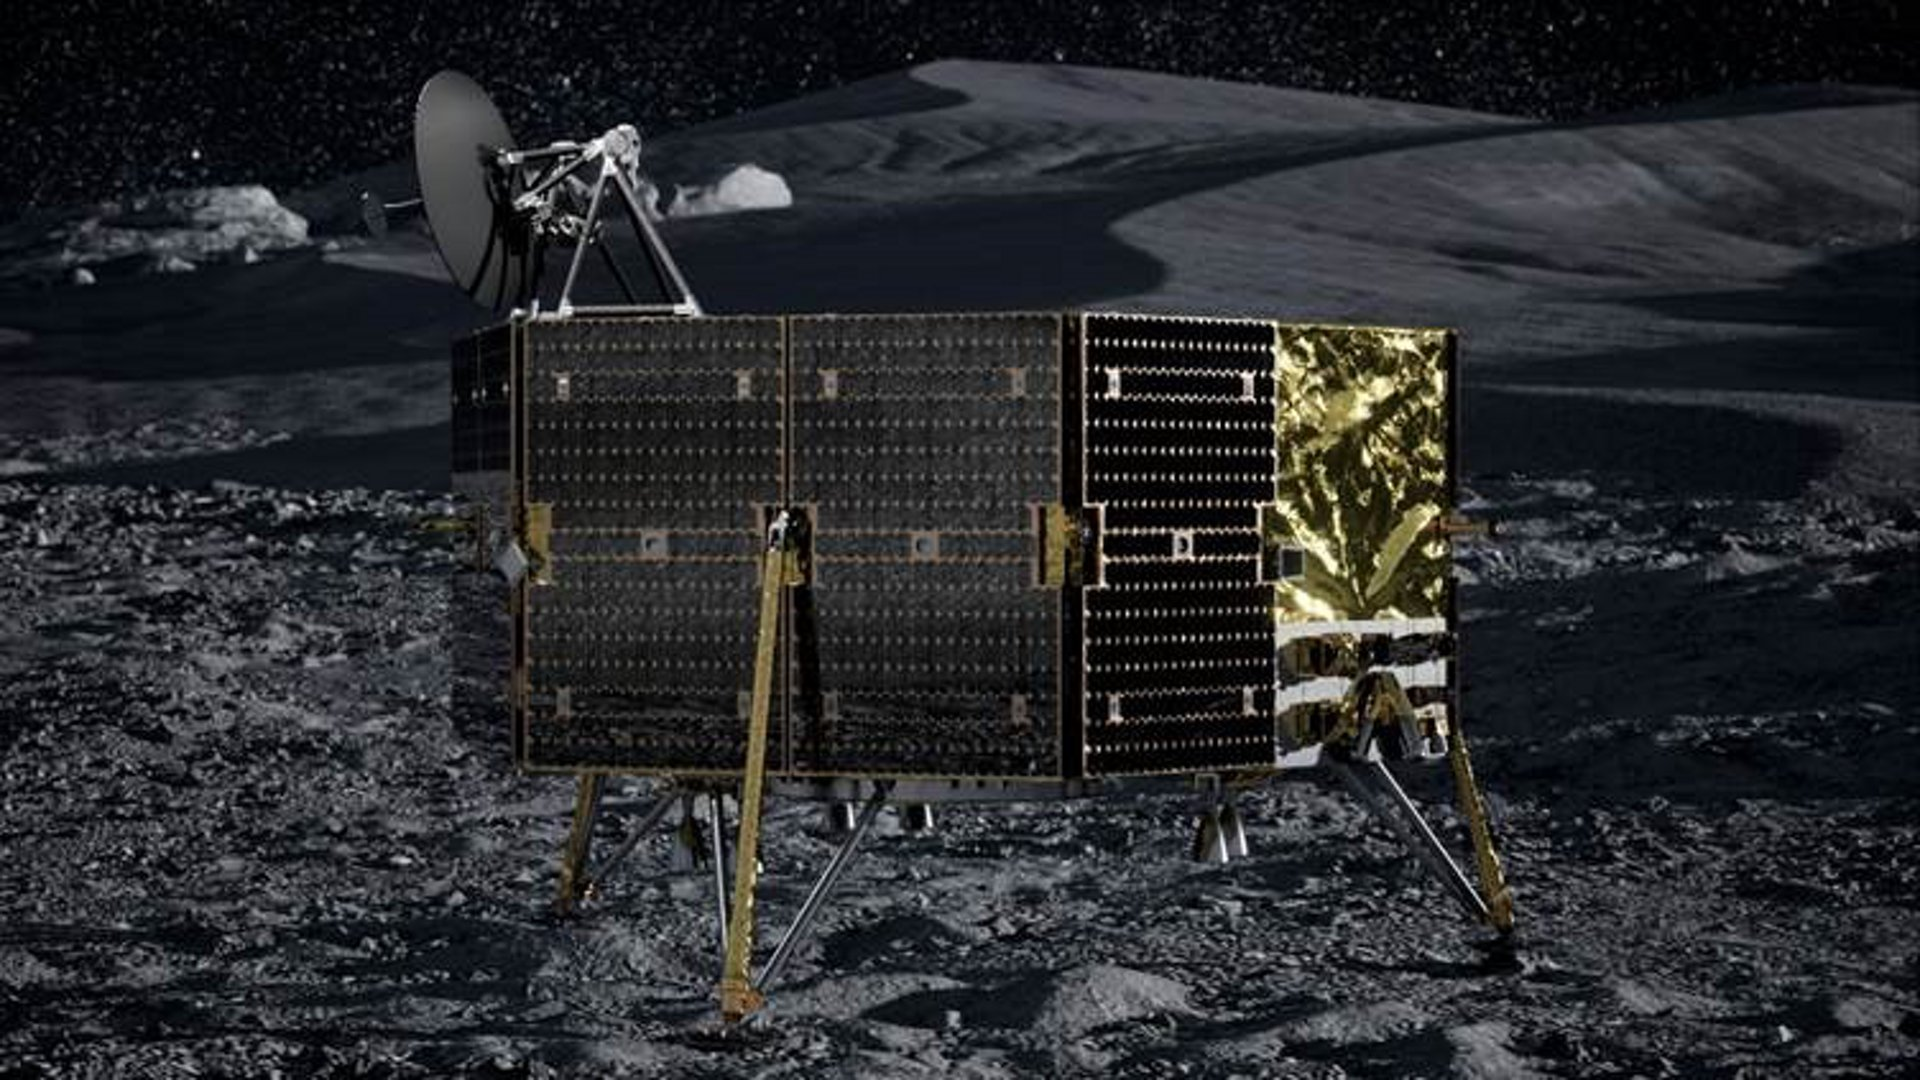 Sparkwing solar panels from Airbus to power lunar mission of Masten.